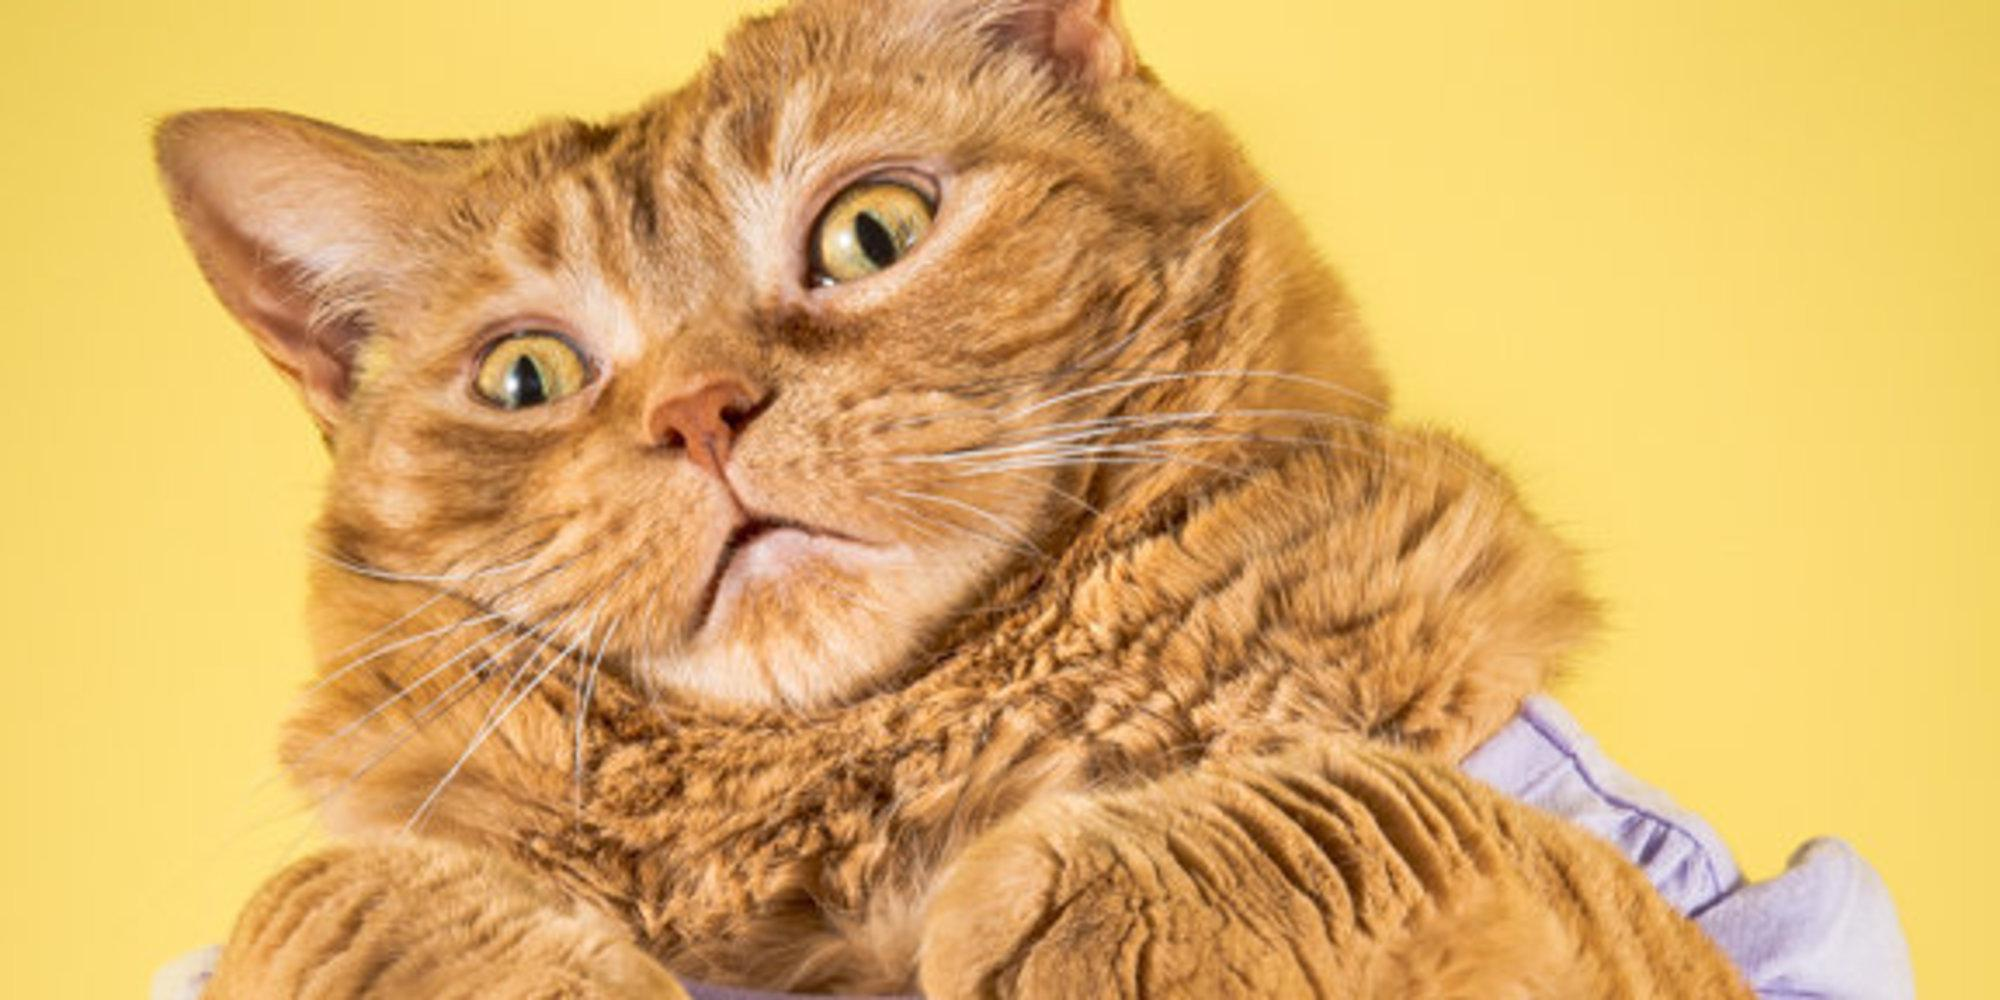 Photographer S Photos Of Adorably Plump Cats Are So Full